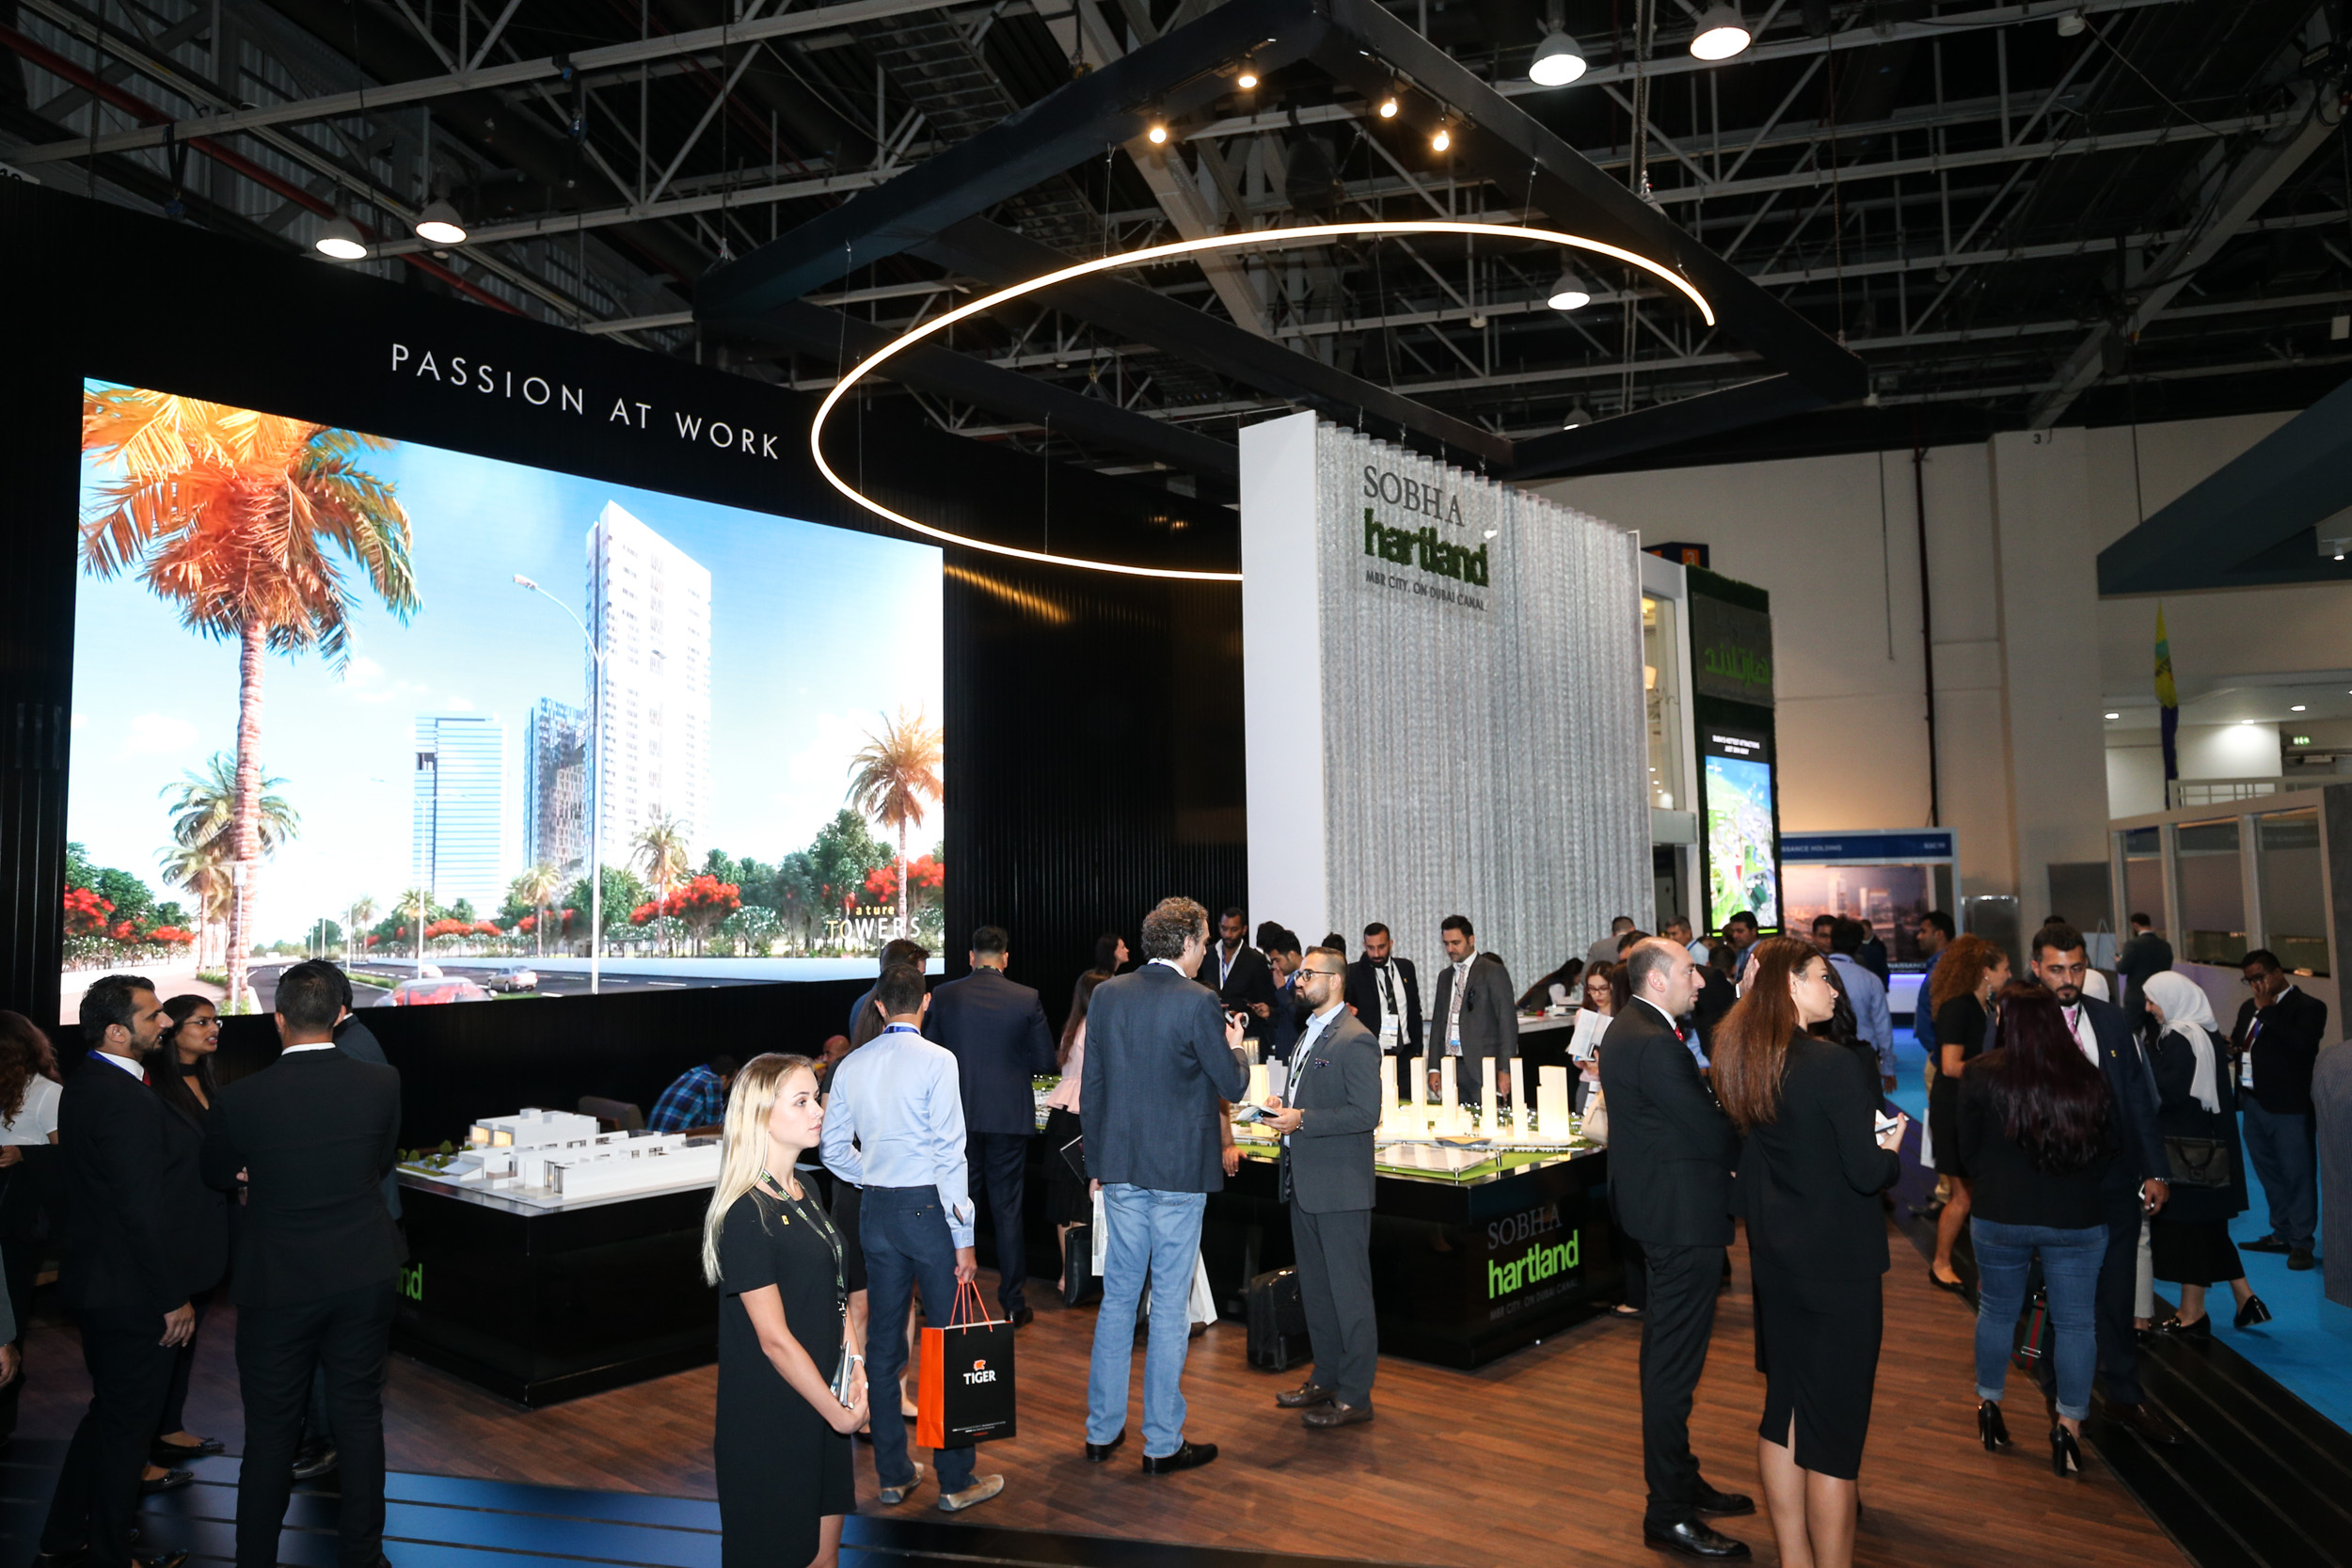 D Exhibition Stand Designer Jobs In Dubai : Exhibit at the uae capitals largest real estate investment and